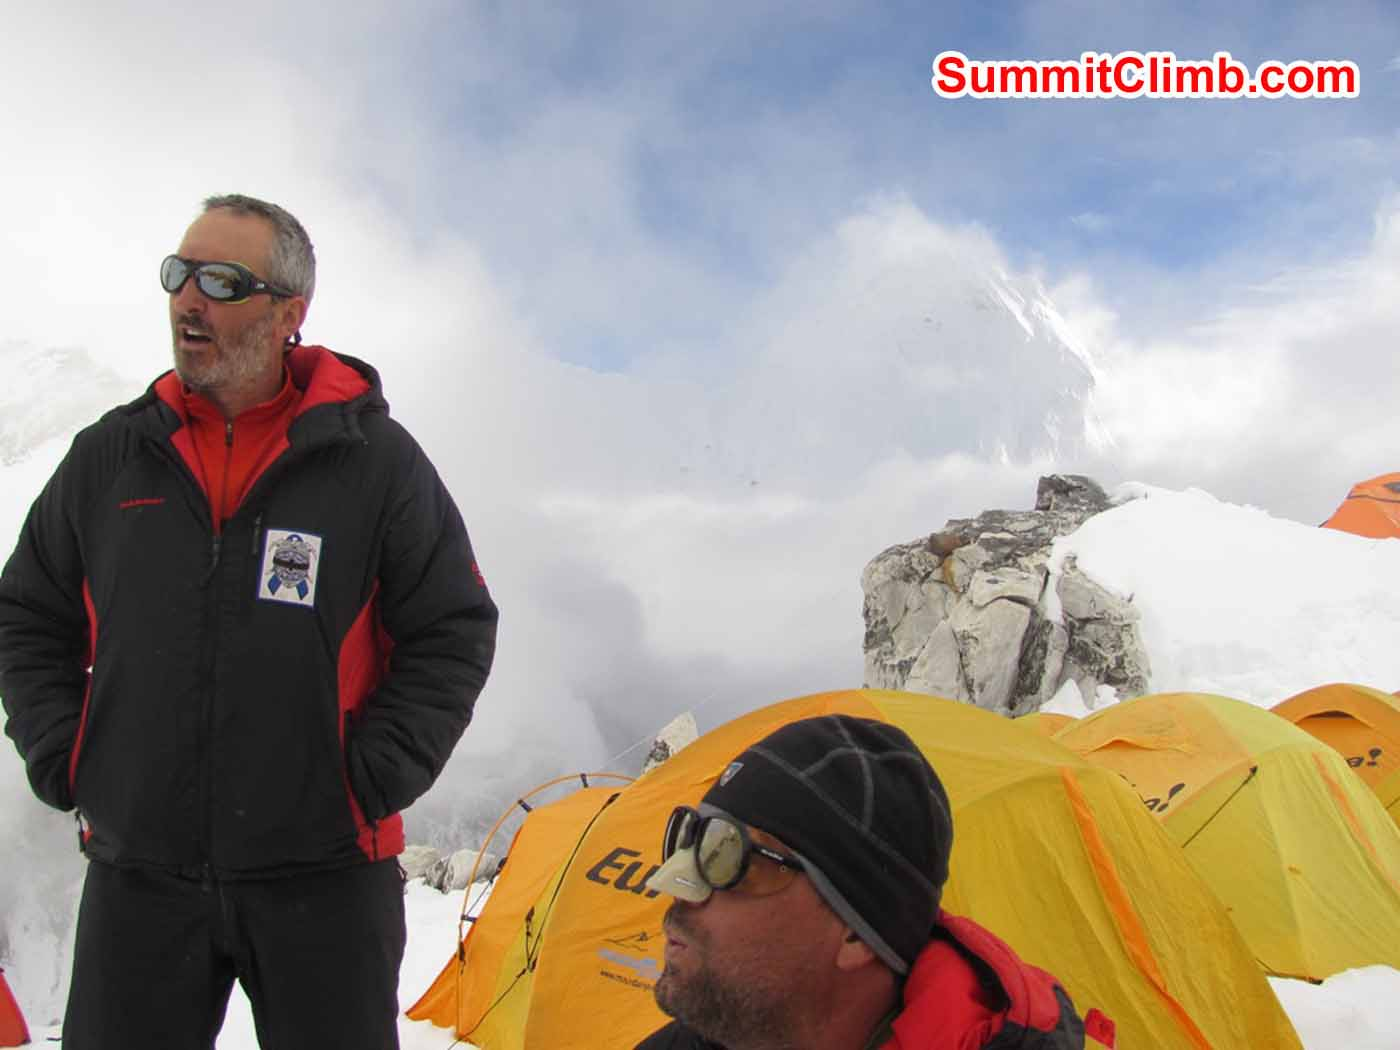 Stu Frink and Steve Janke at Camp 1 by Troy Bacon